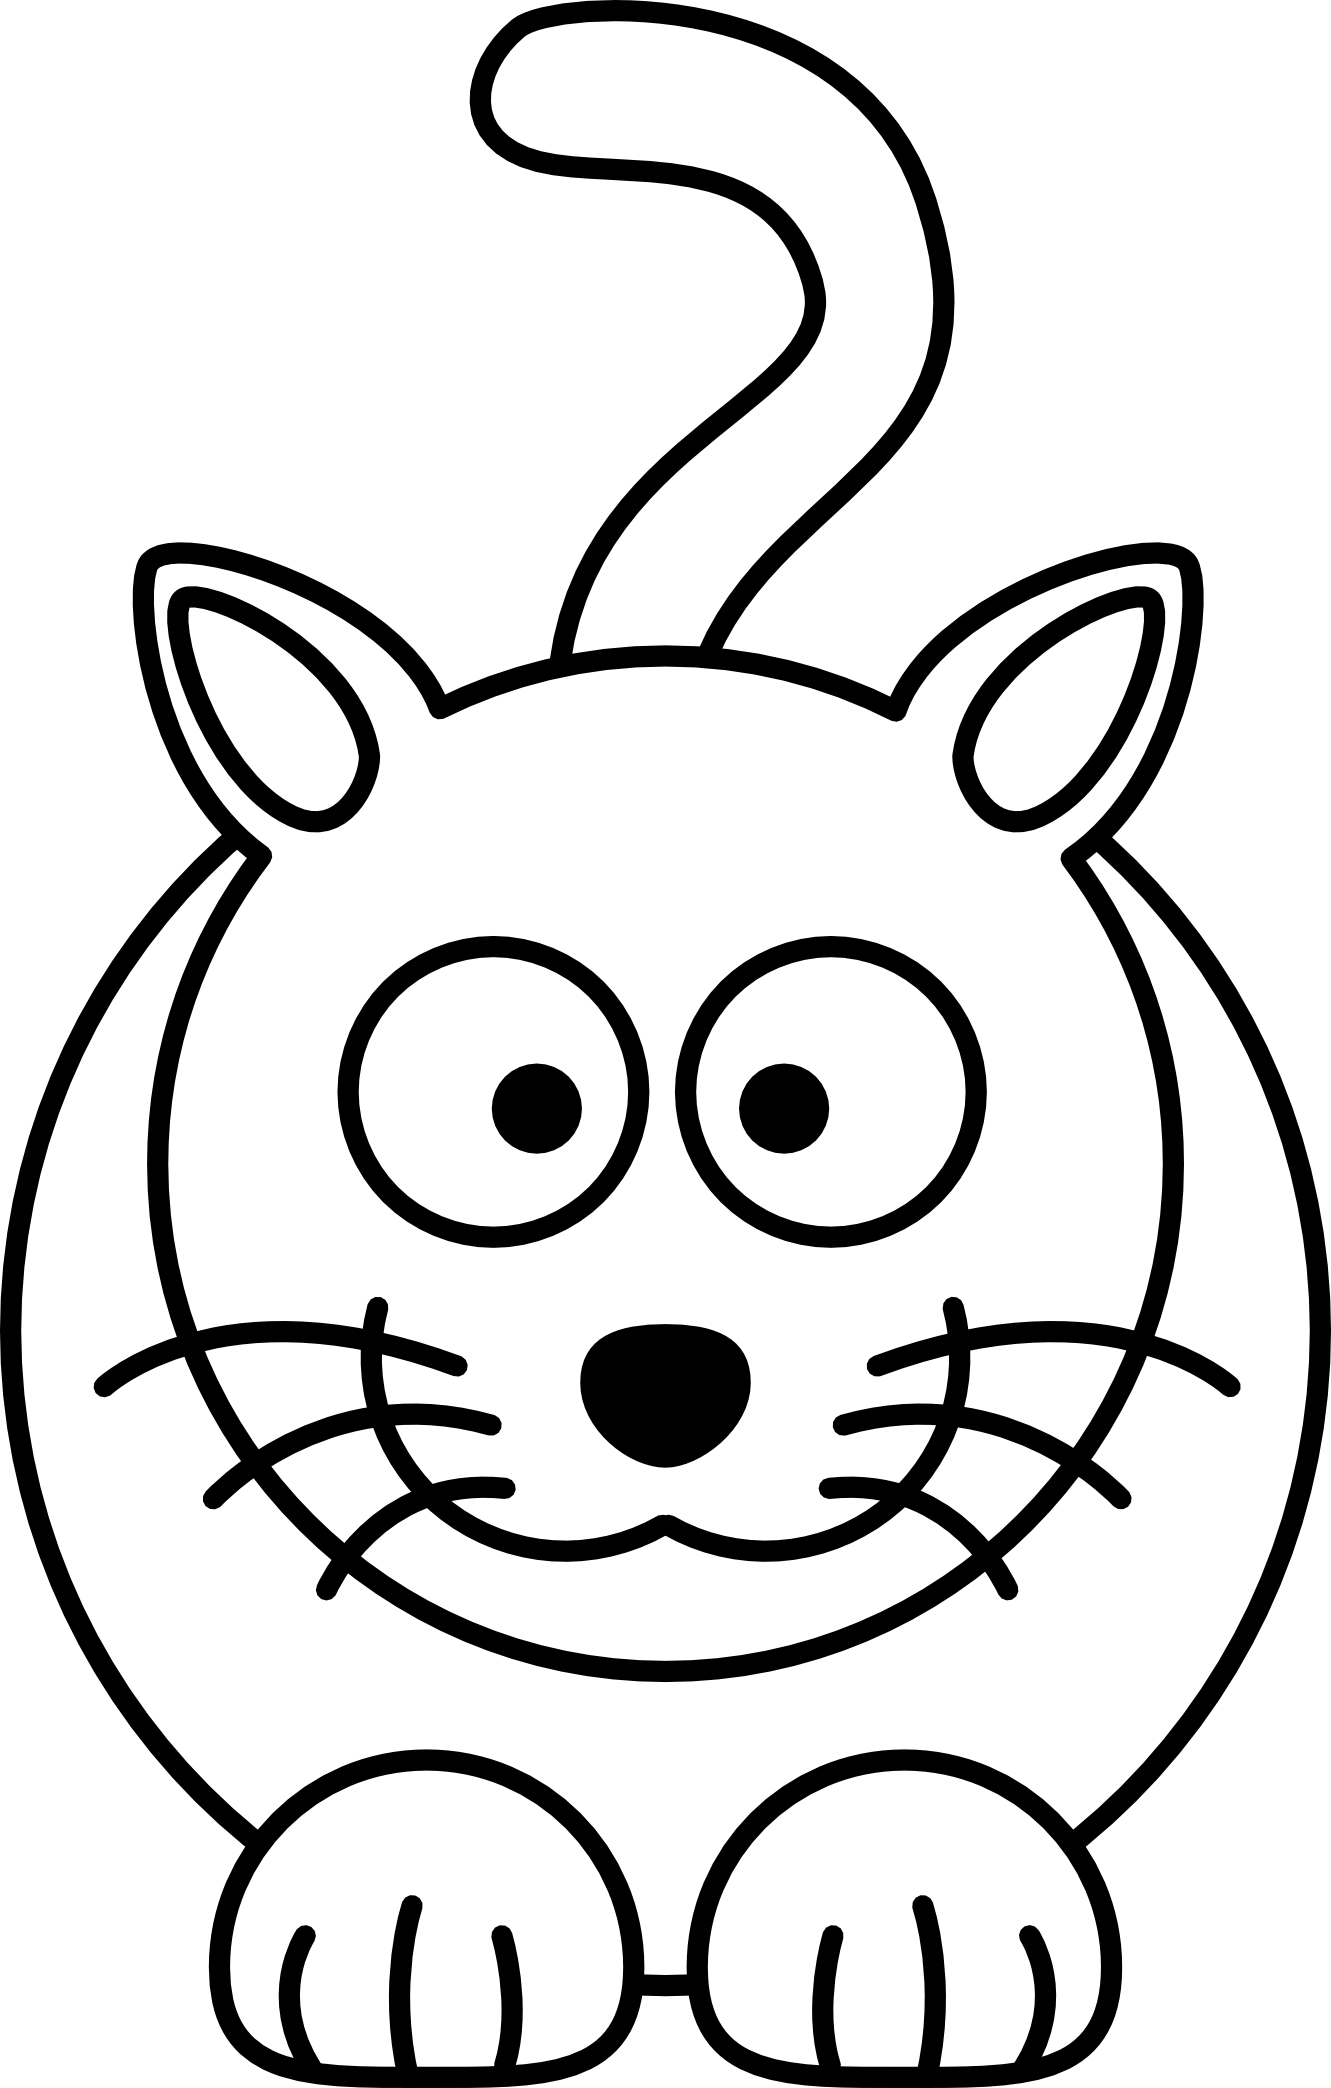 Cat clip art simple. Line drawing of at